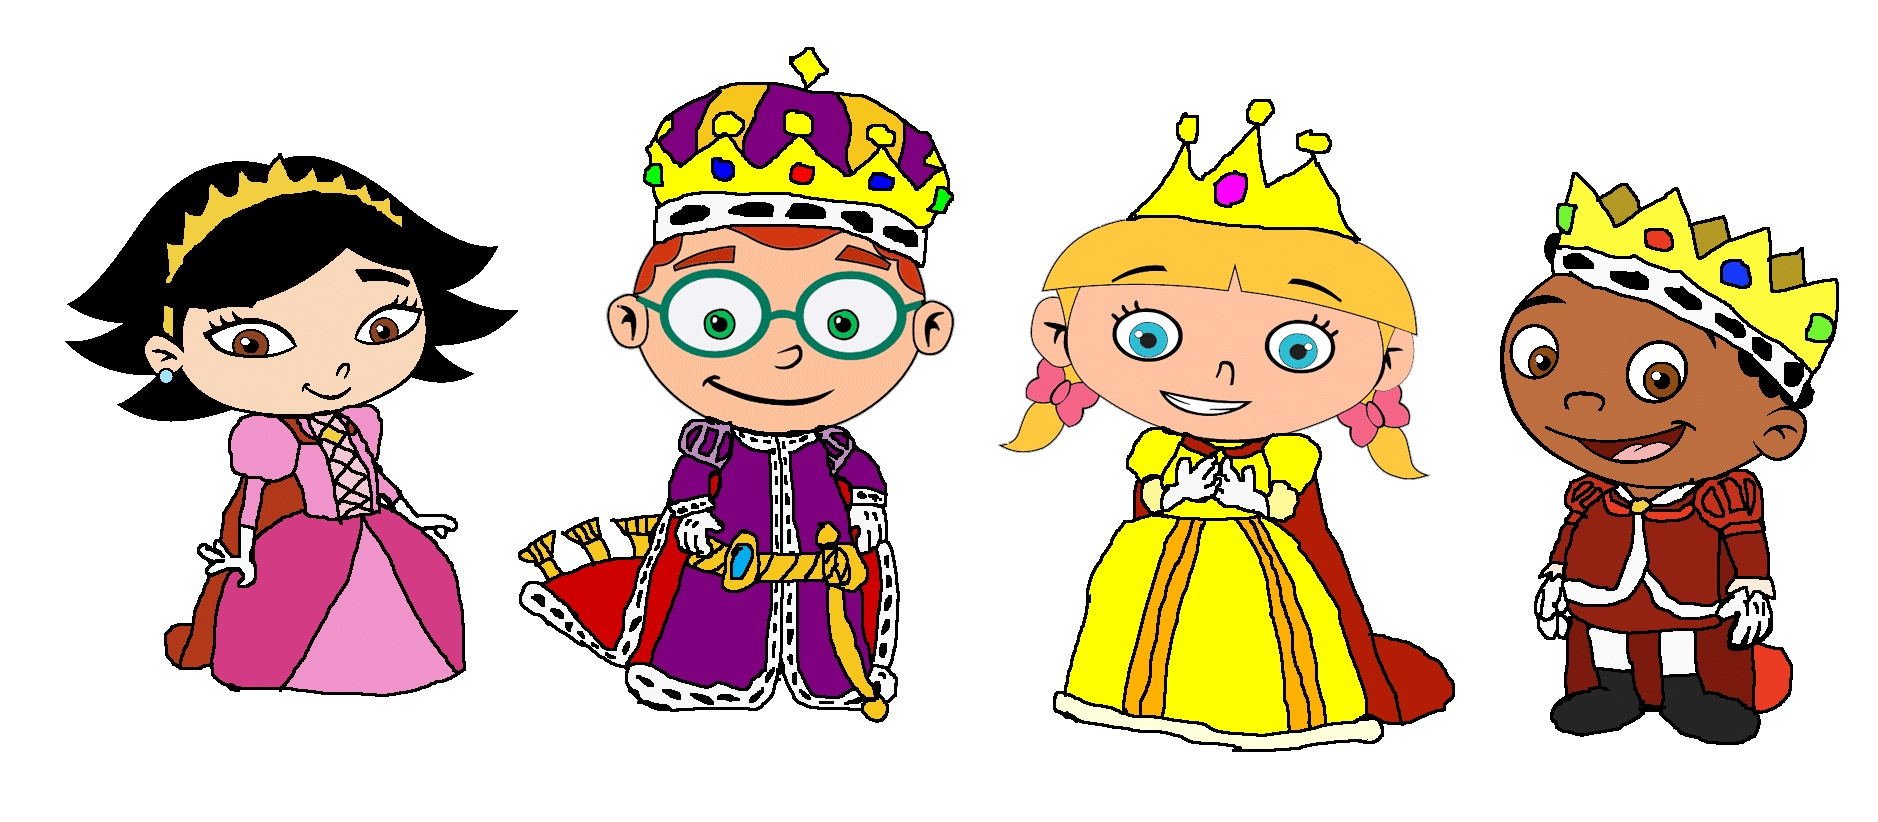 Queen clipart royal. Free cliparts download clip